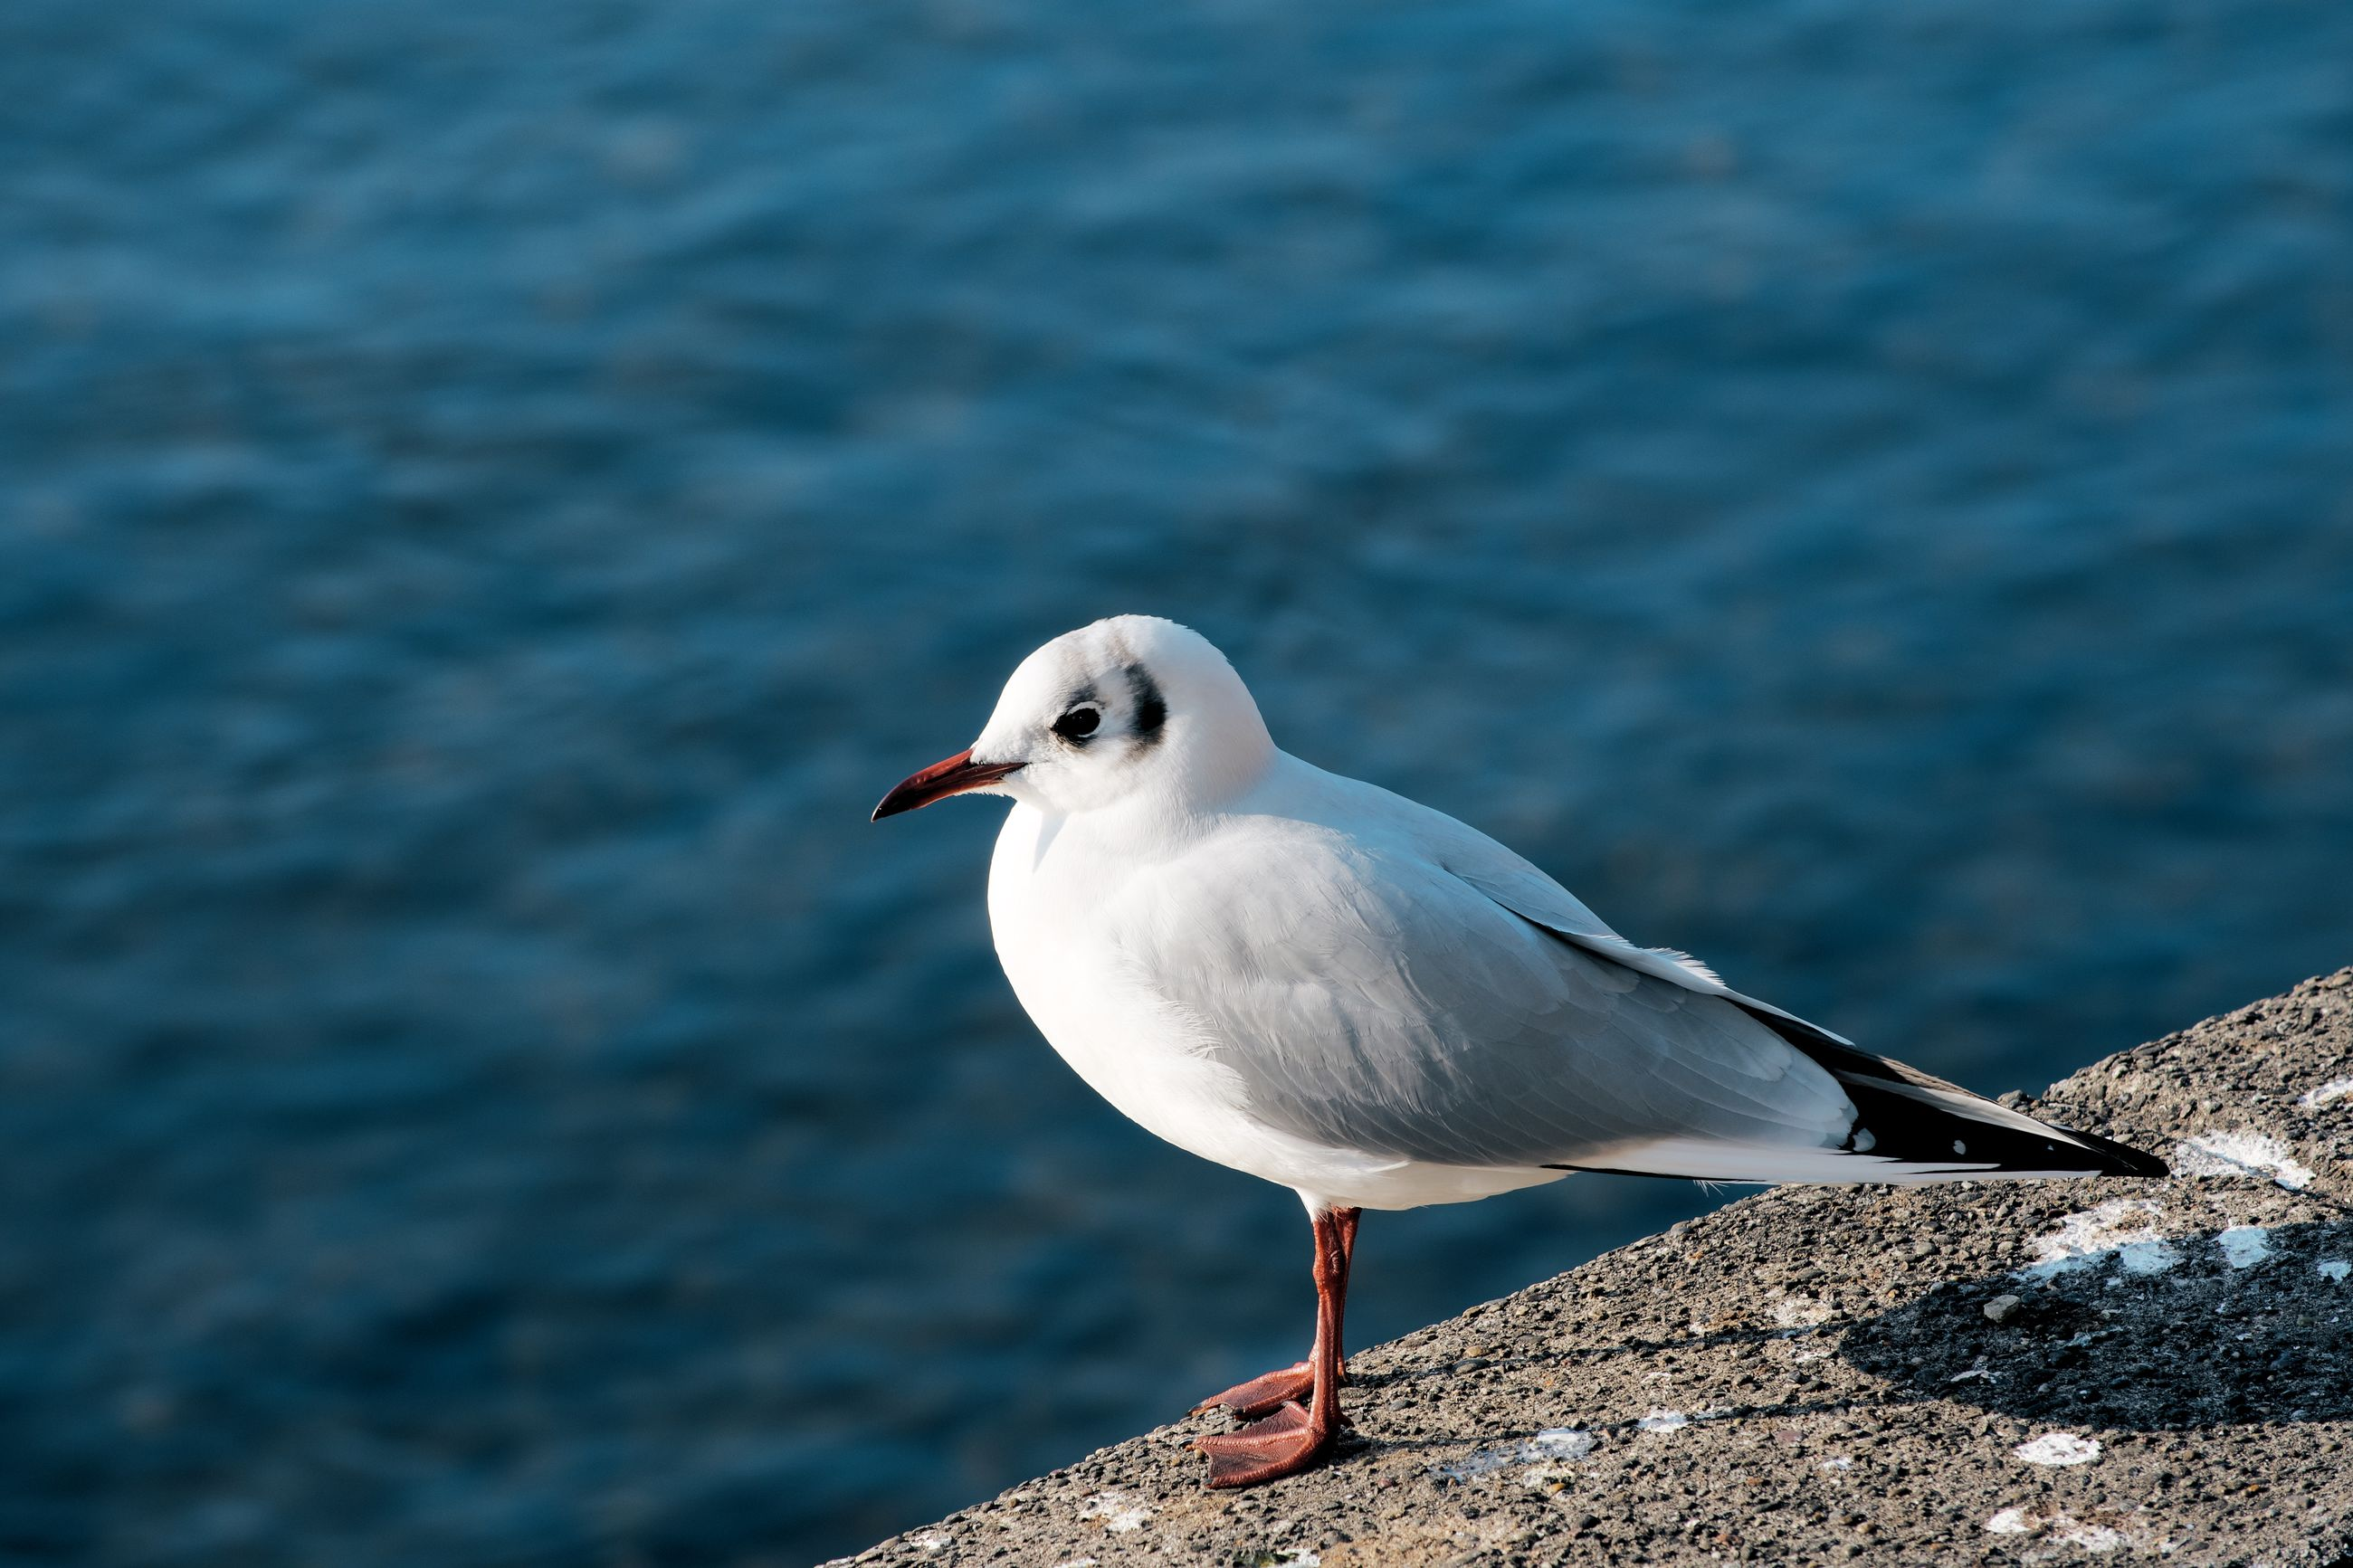 animal, animal themes, bird, animals in the wild, vertebrate, animal wildlife, one animal, seagull, day, focus on foreground, no people, water, perching, nature, white color, sea, sea bird, black-headed gull, close-up, outdoors